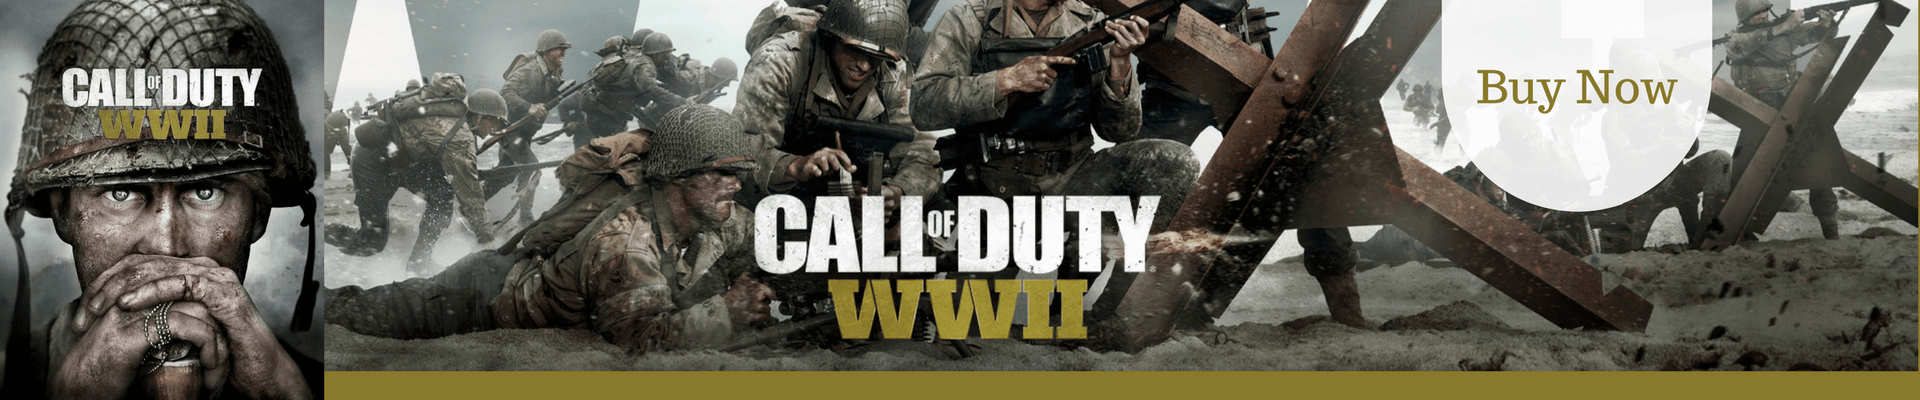 call of duty wwii price in qatar and doha